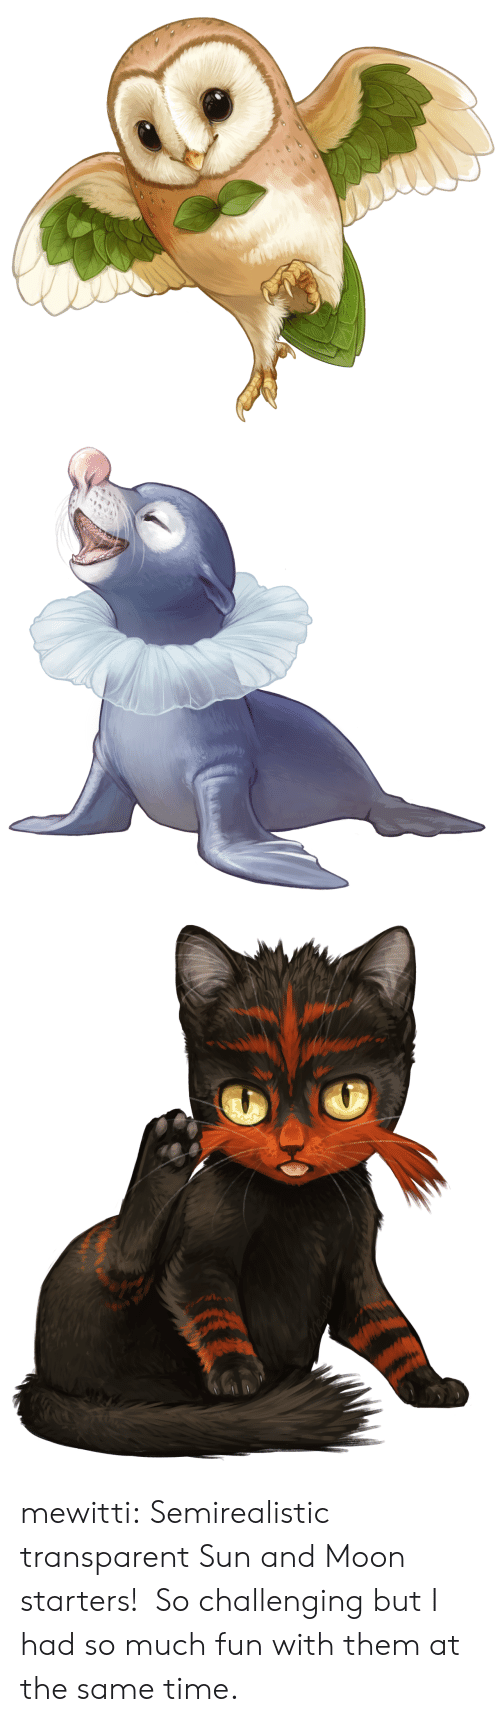 Target, Tumblr, and Blog: mewitti:  Semirealistic transparent Sun and Moon starters! So challenging but I had so much fun with them at the same time.